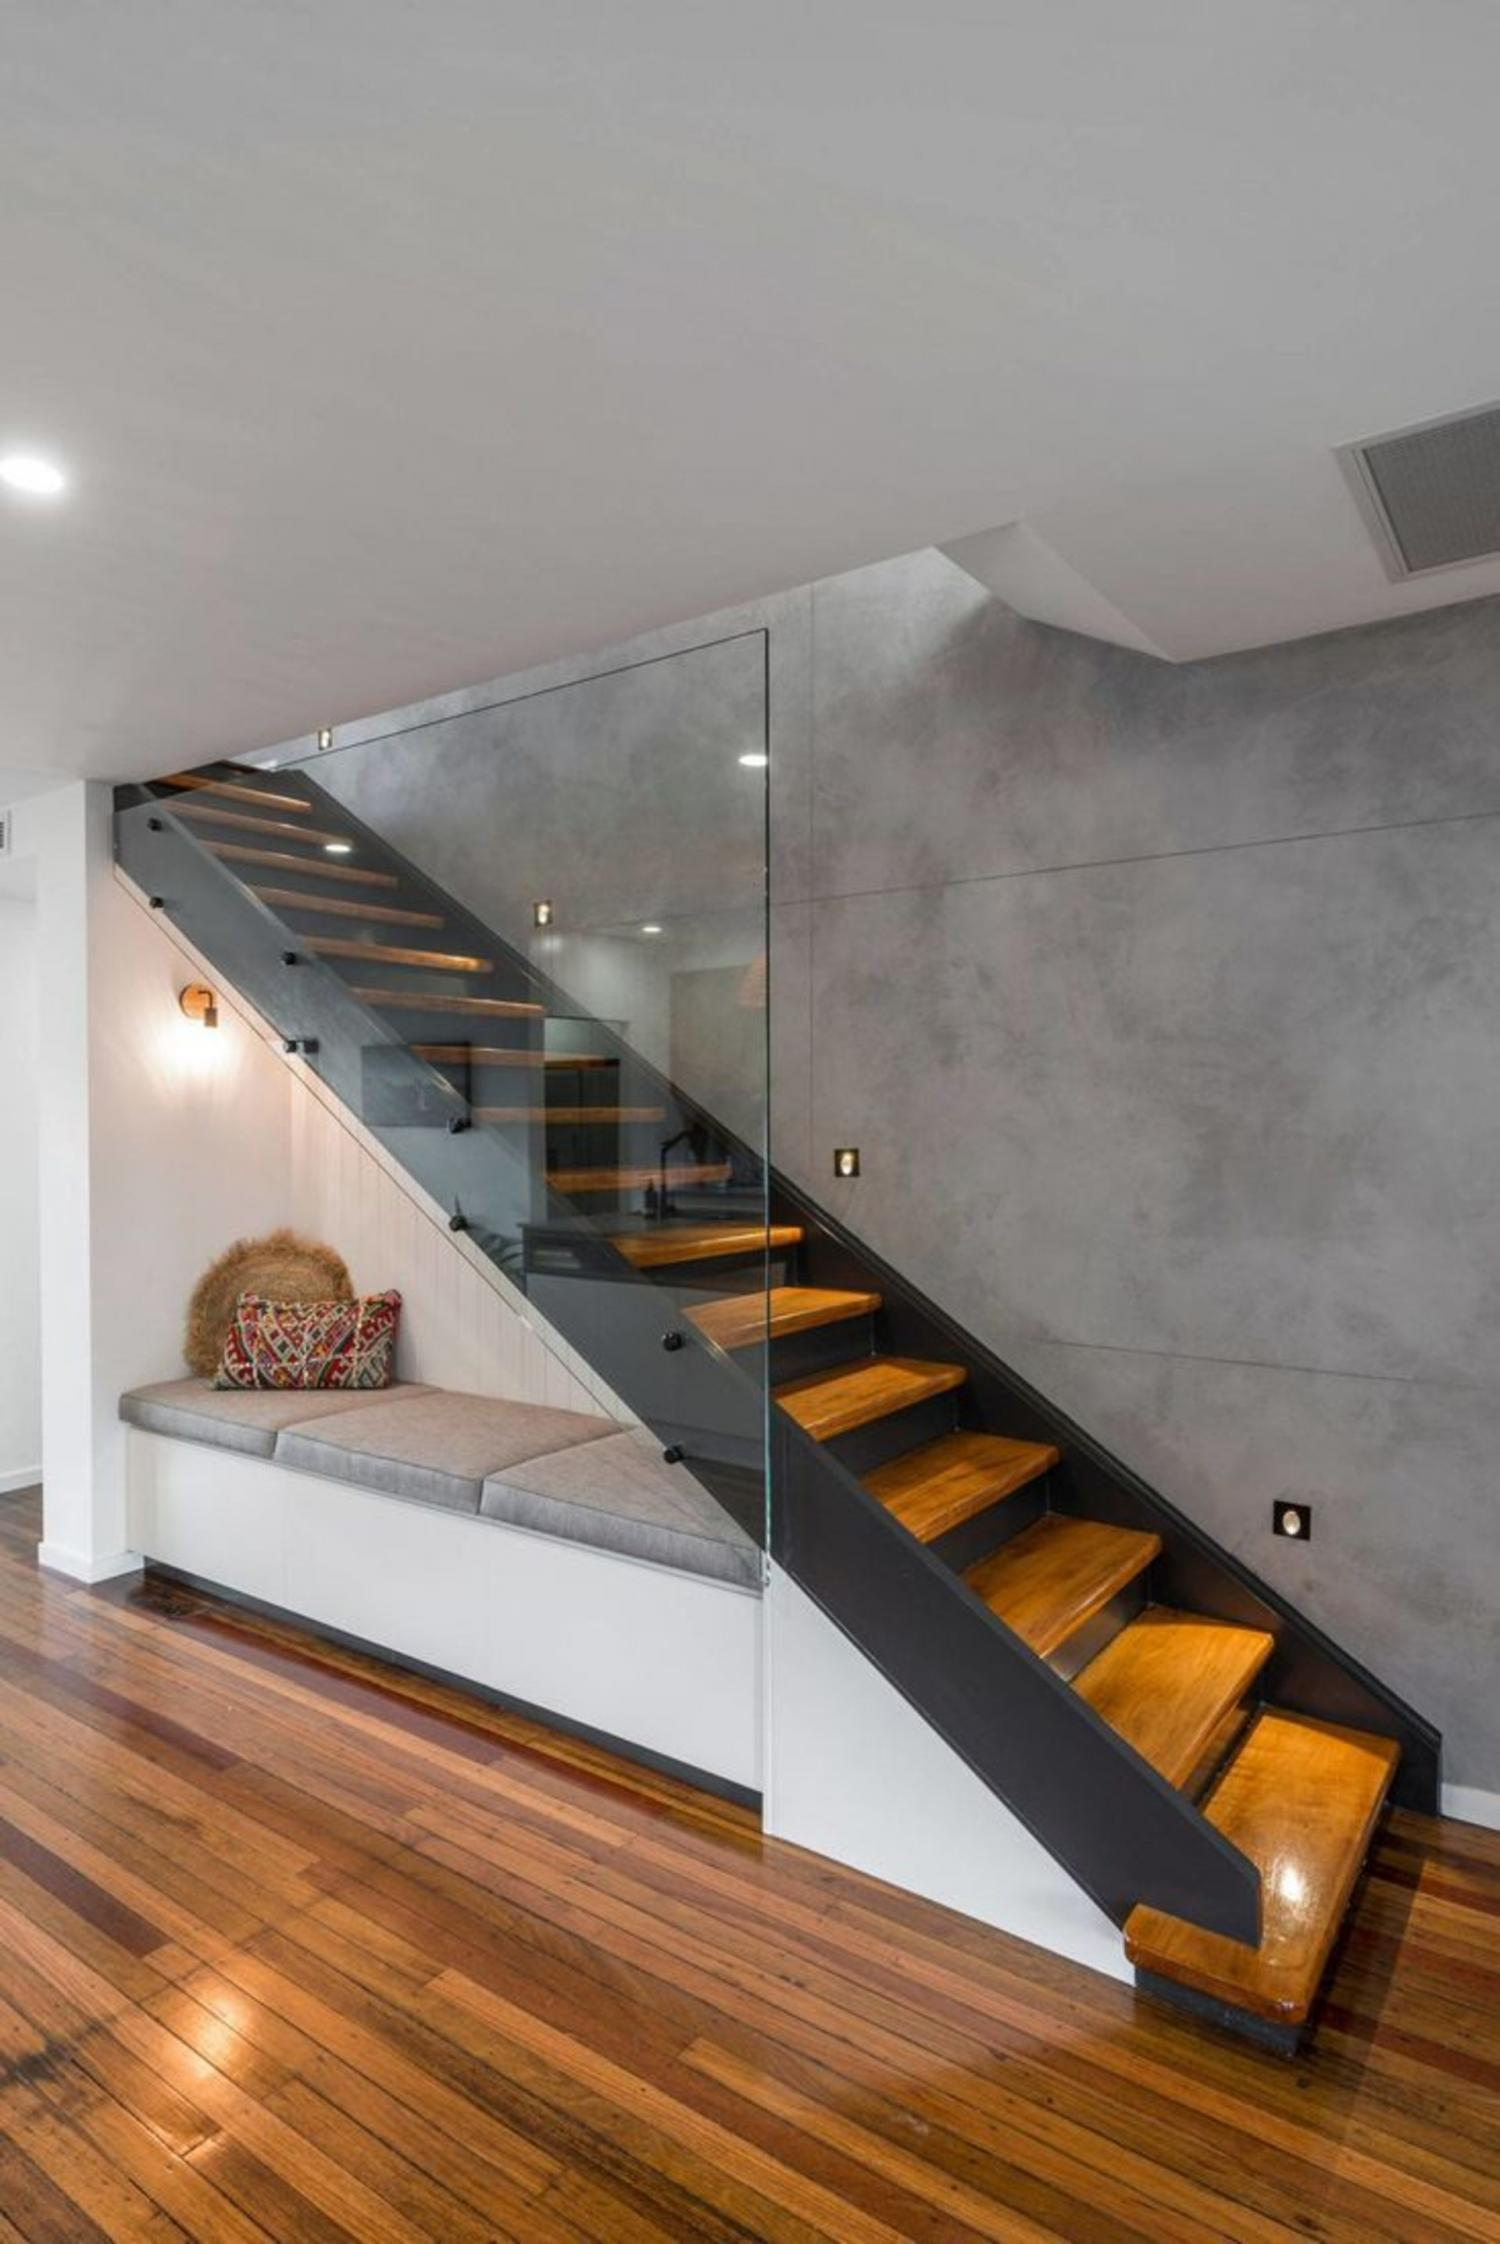 Most Creative Under The Stairs Home Designs - Modern lounge couch under the stairs